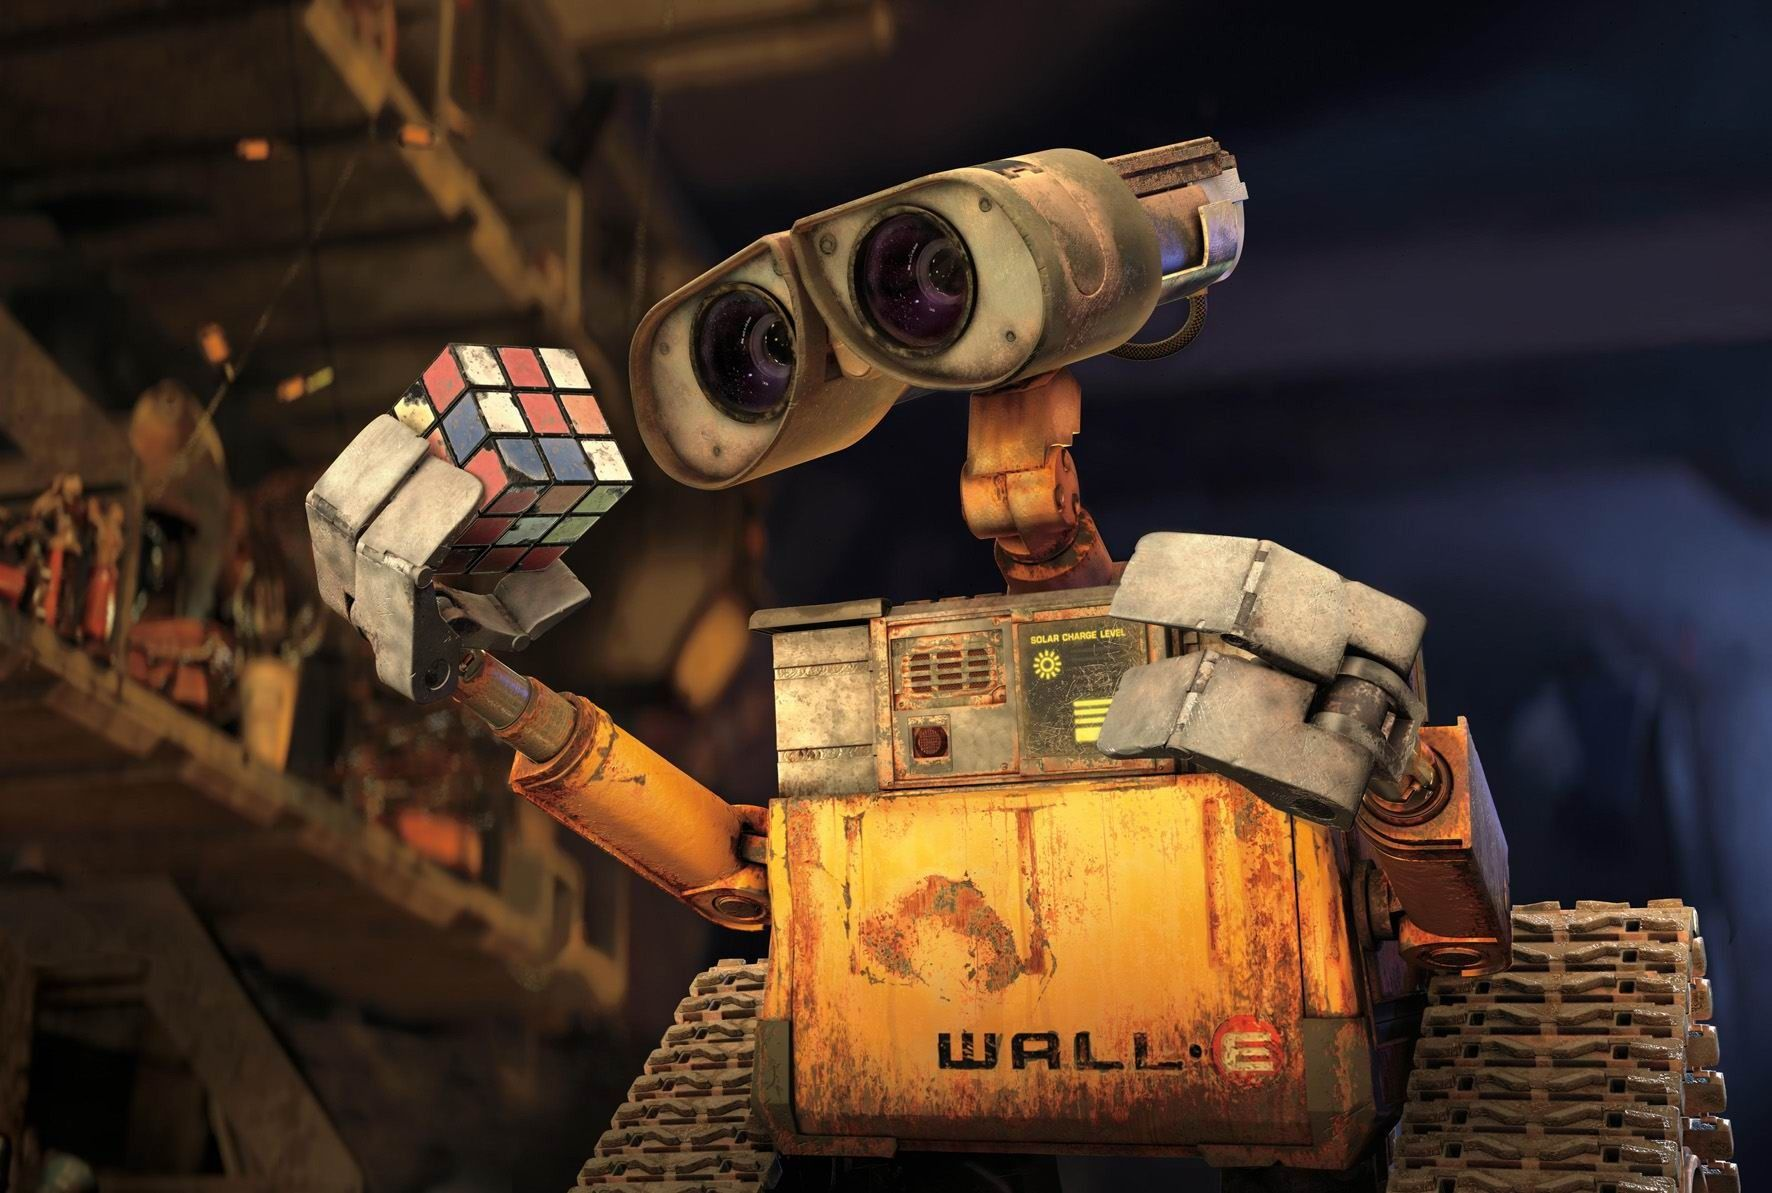 Check out Wall-e from 15 Best Pixar Characters